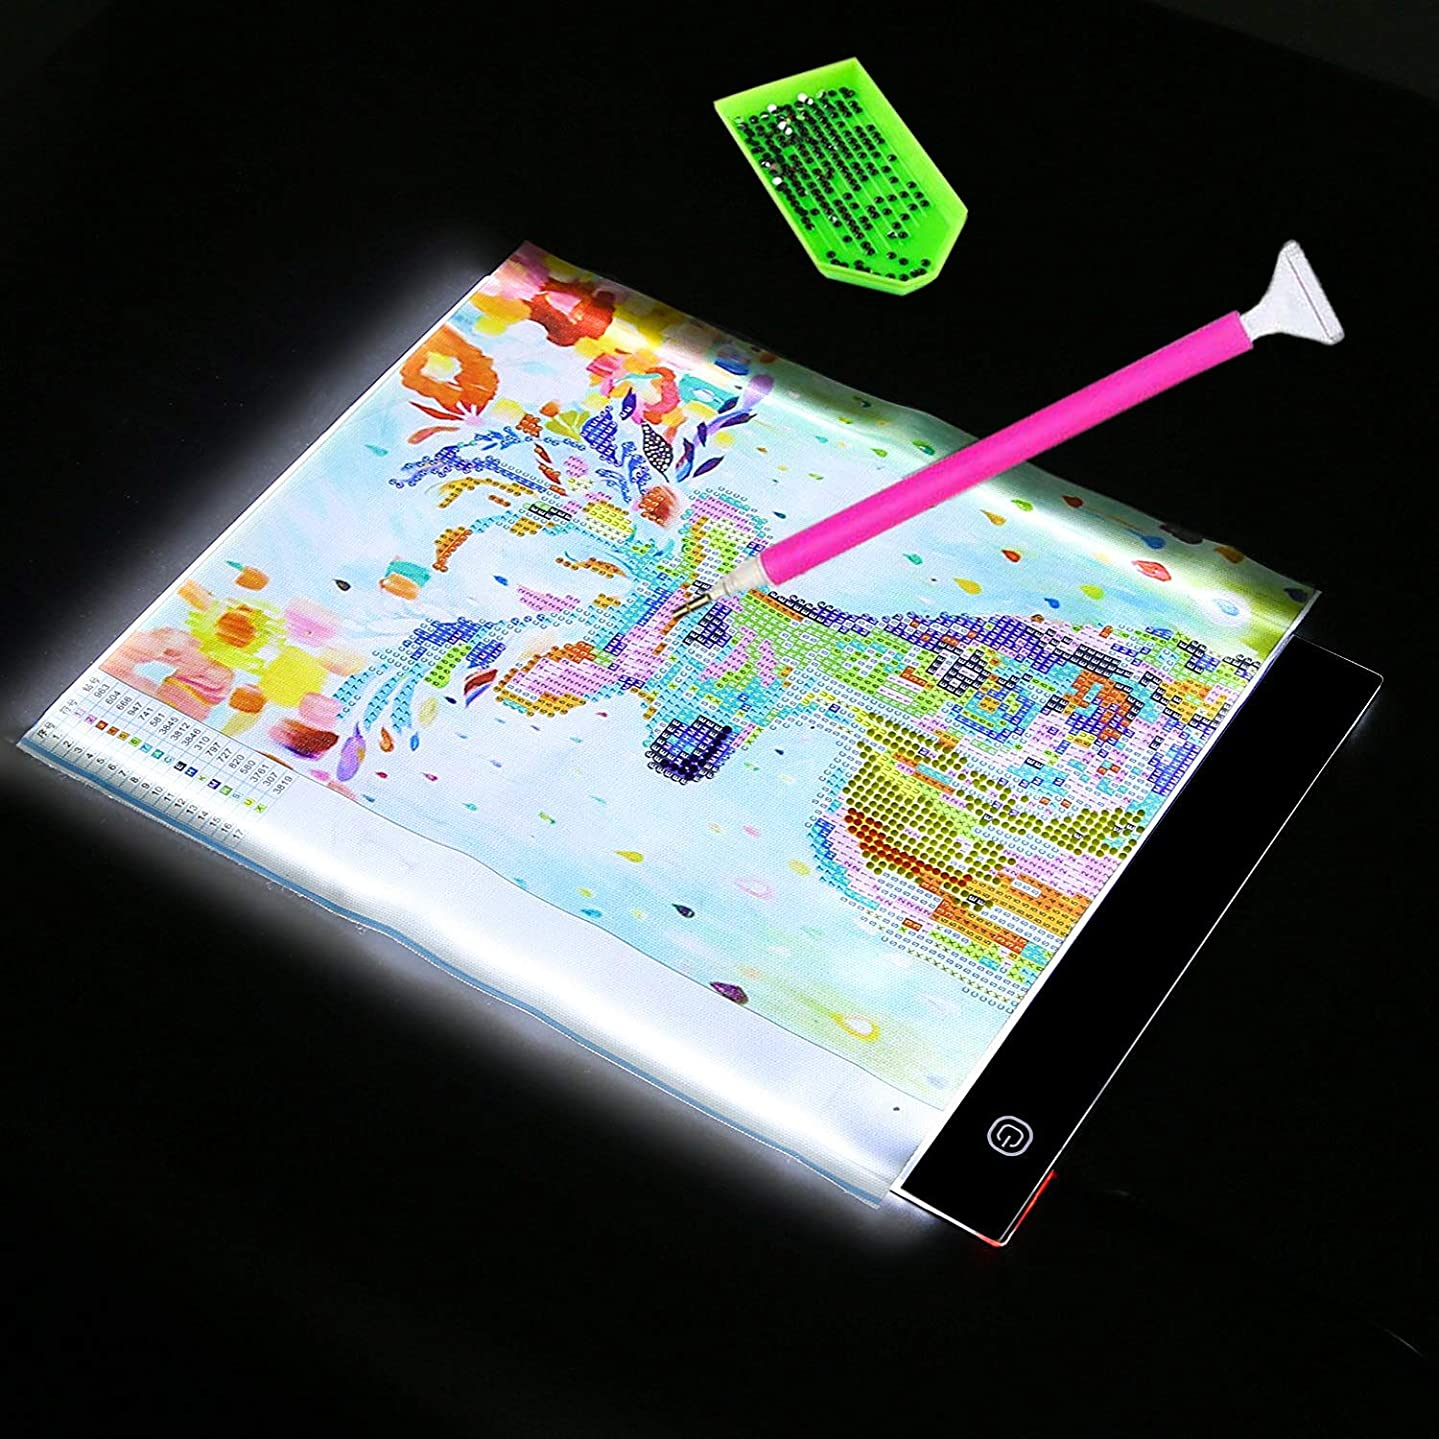 Foyute Diamond Painting A4 LED Light Box Tracer, Ultra-Thin Light Pad Board Tablet Dimmable Brightness Artcraft Tracing Light Pad for 5D Diamond Painting Sketching Embroidery Dots Cross Stitch